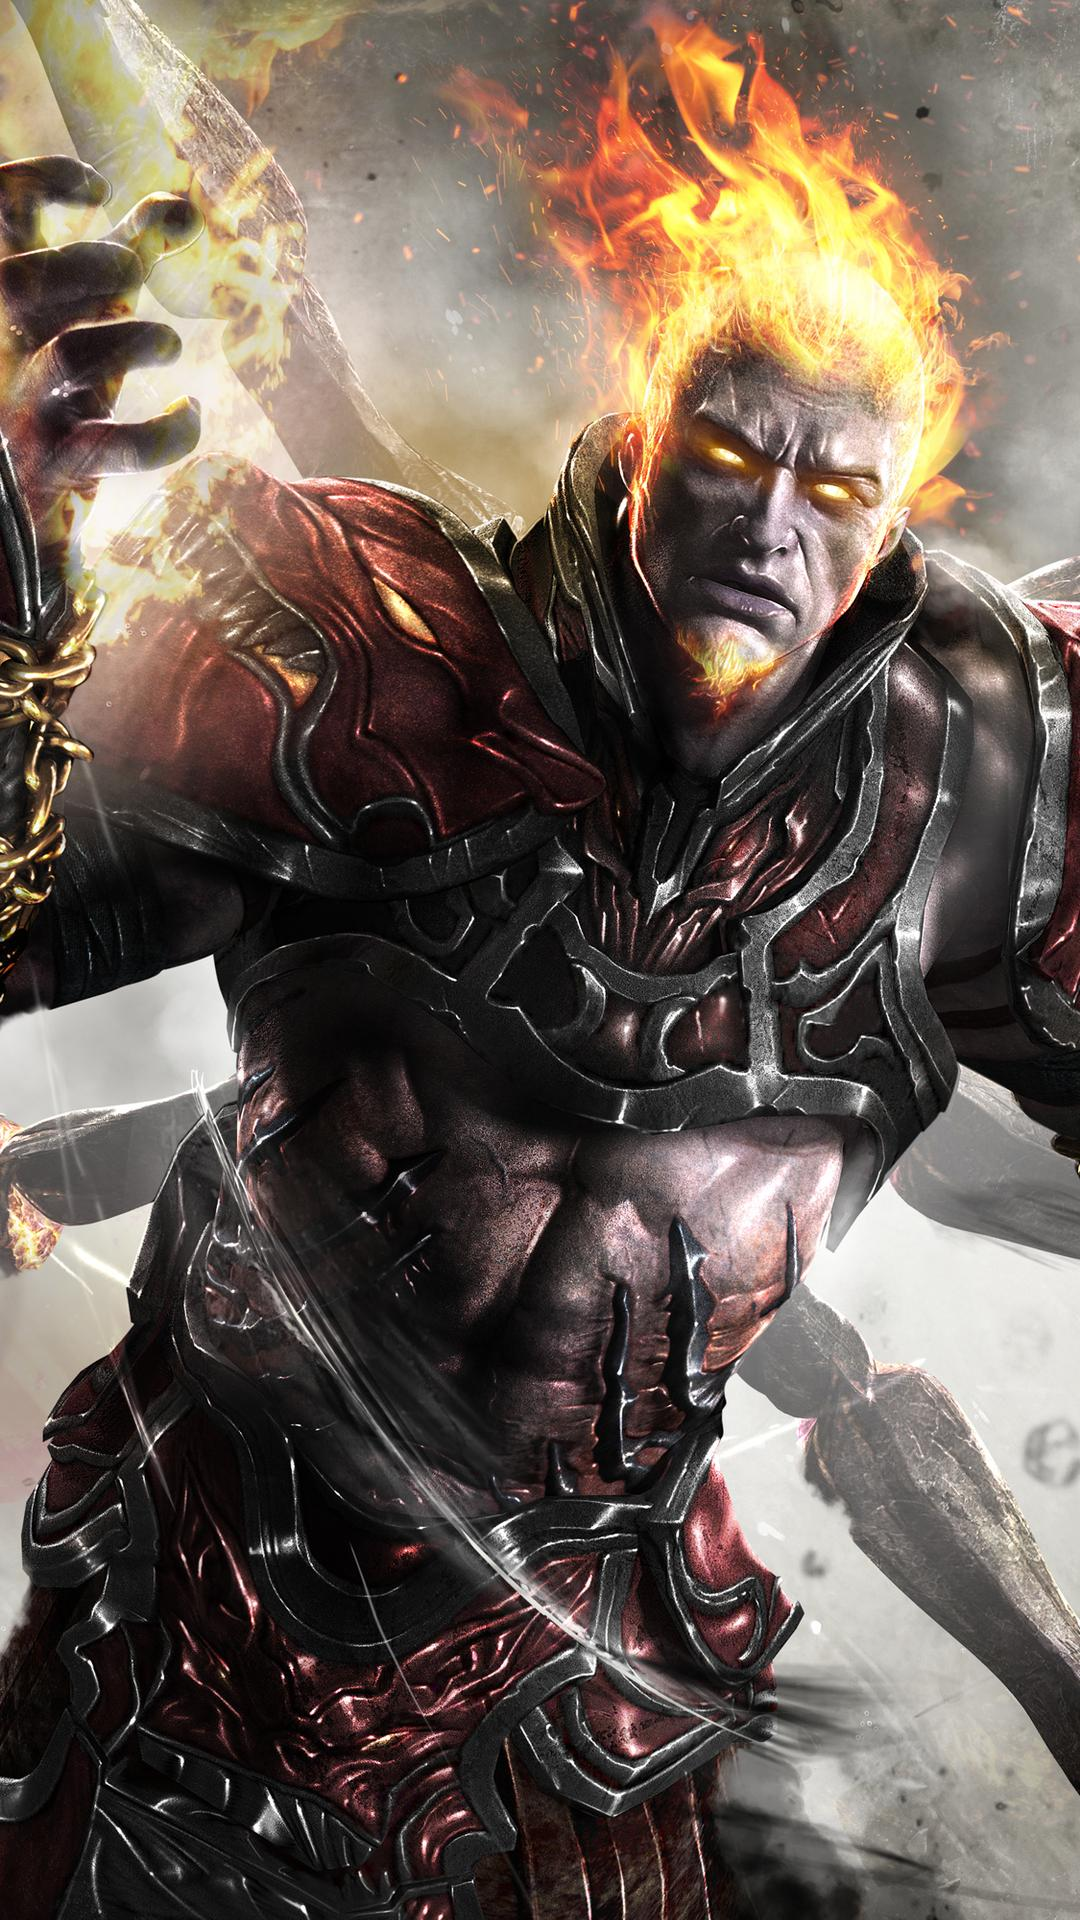 Ares from god of war ascension wallpaper download 1080x1920 - Ares god of war wallpaper ...